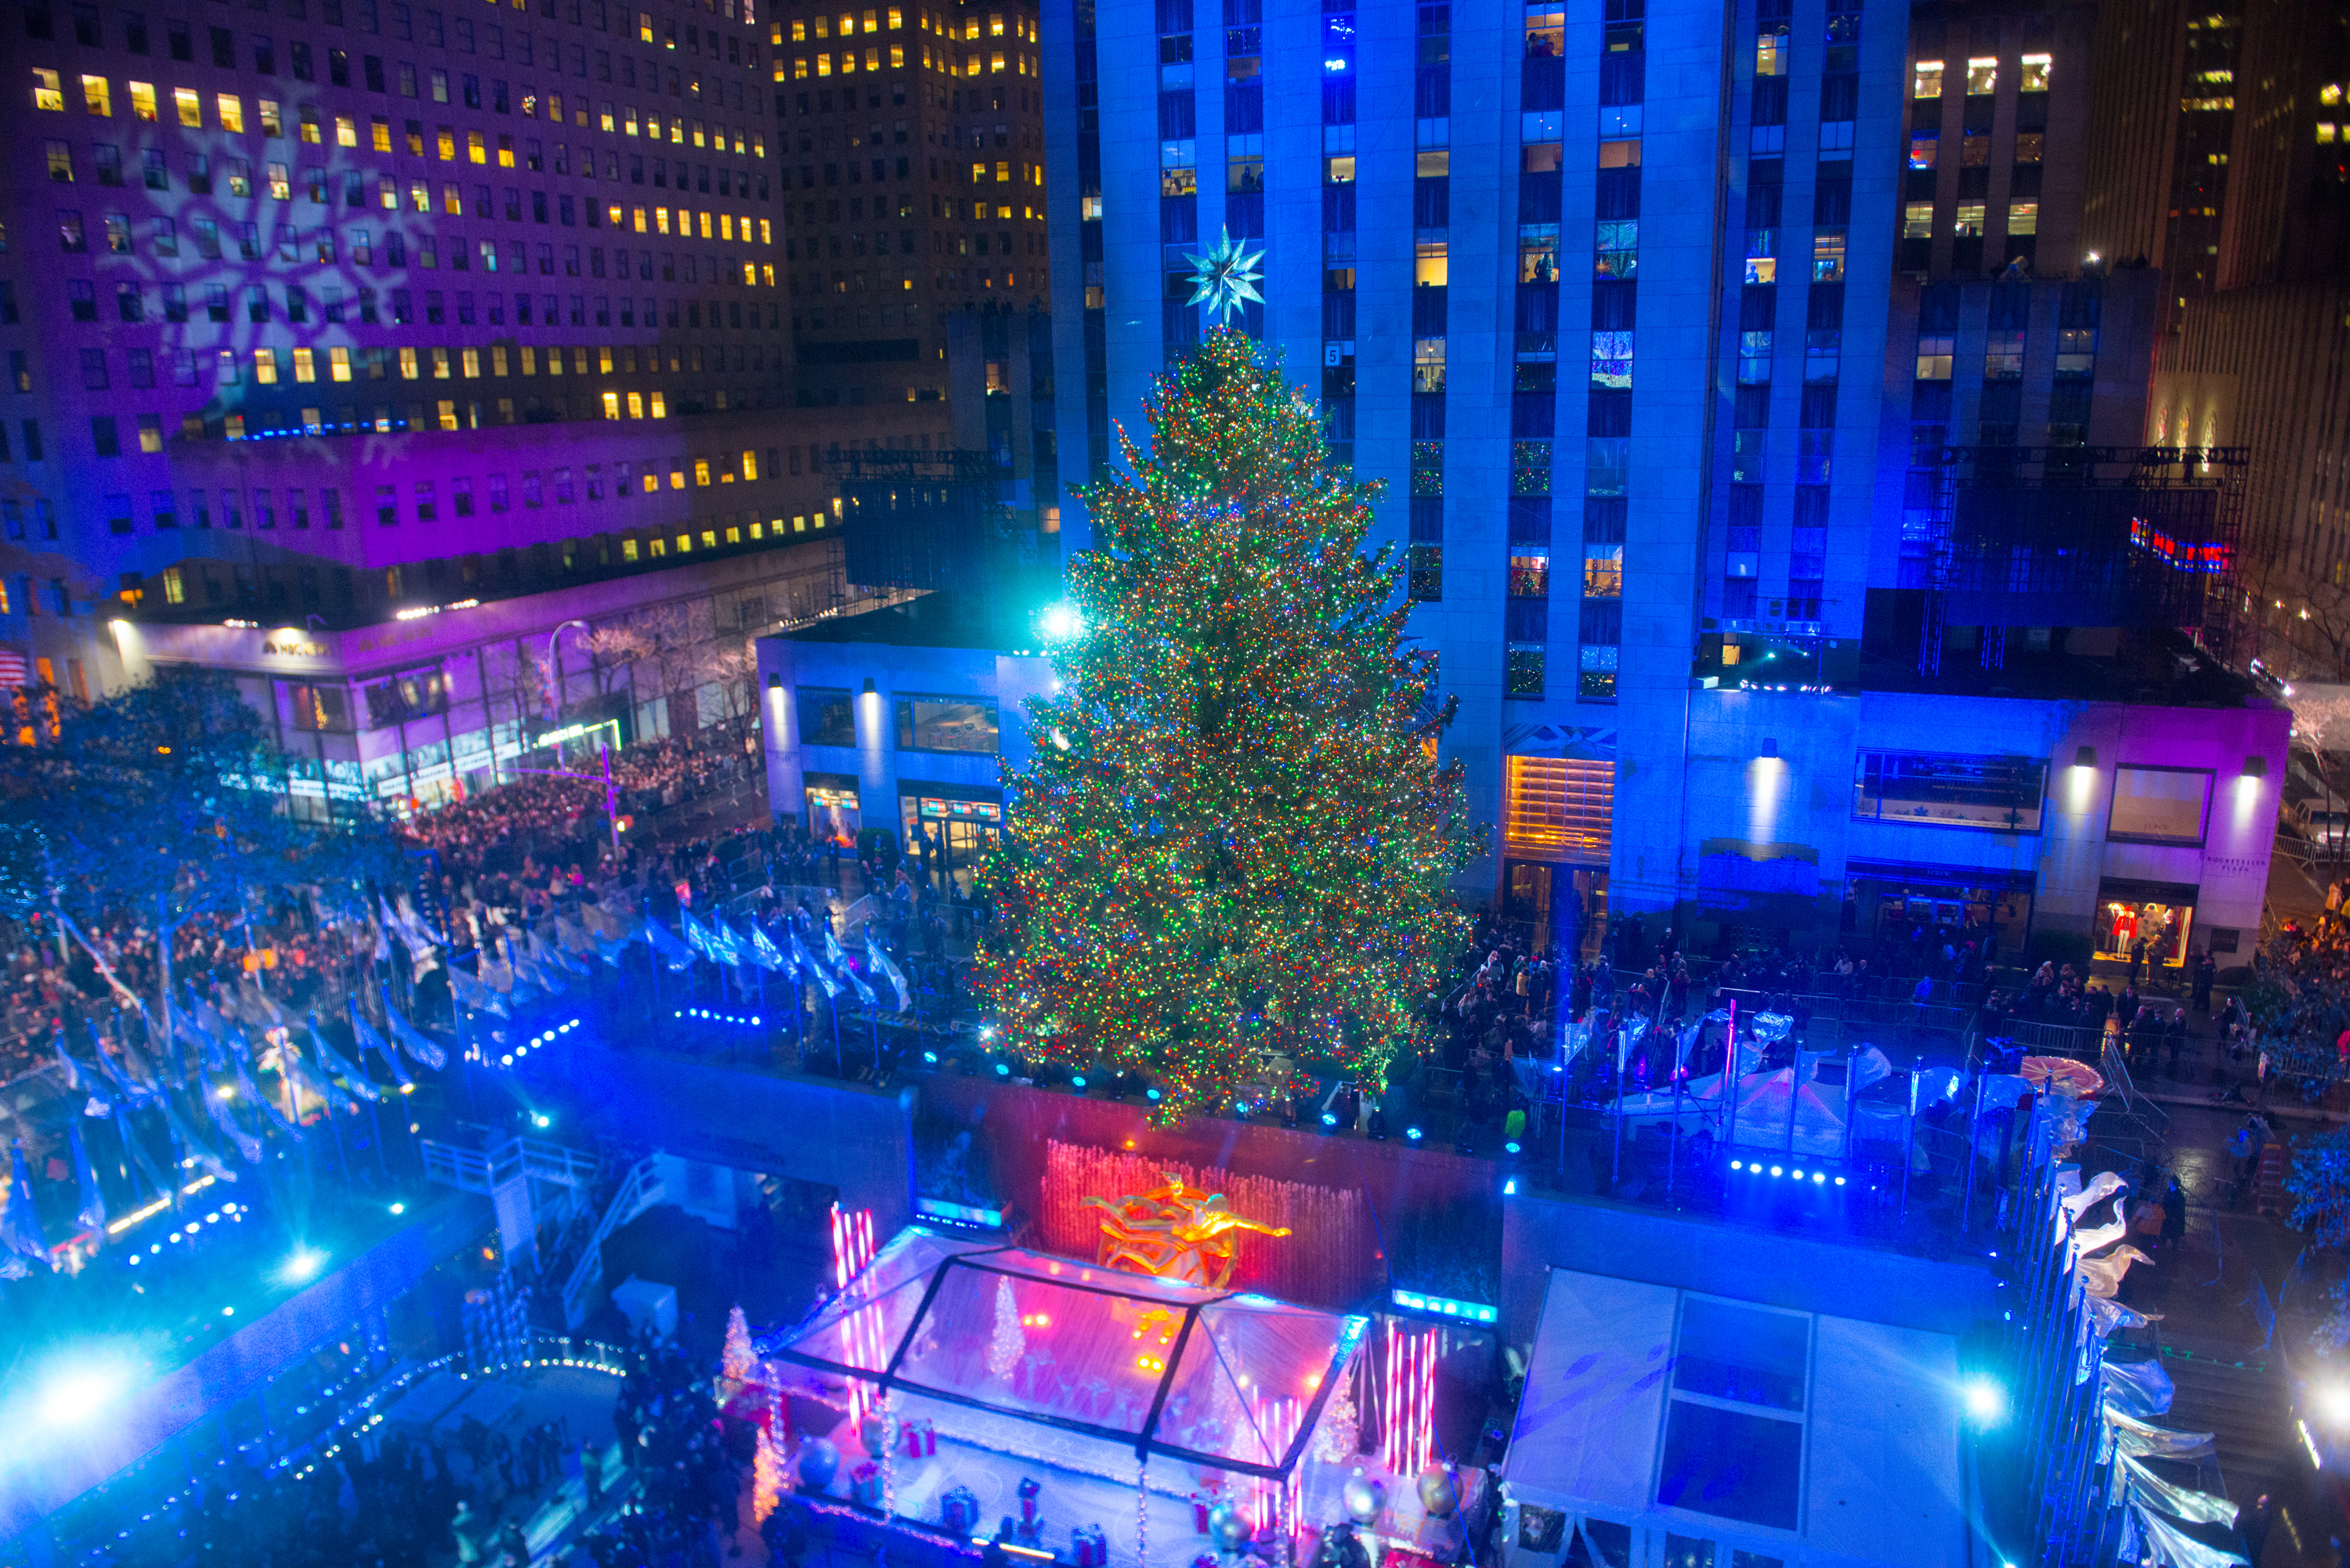 When you gather around the Christmas tree with your family, do you ever wonder: what does Gov. Andrew Cuomo think of this holiday? His press office—and those of other elected officials—have you covered . (Photo by Noam Galai/Getty Images)